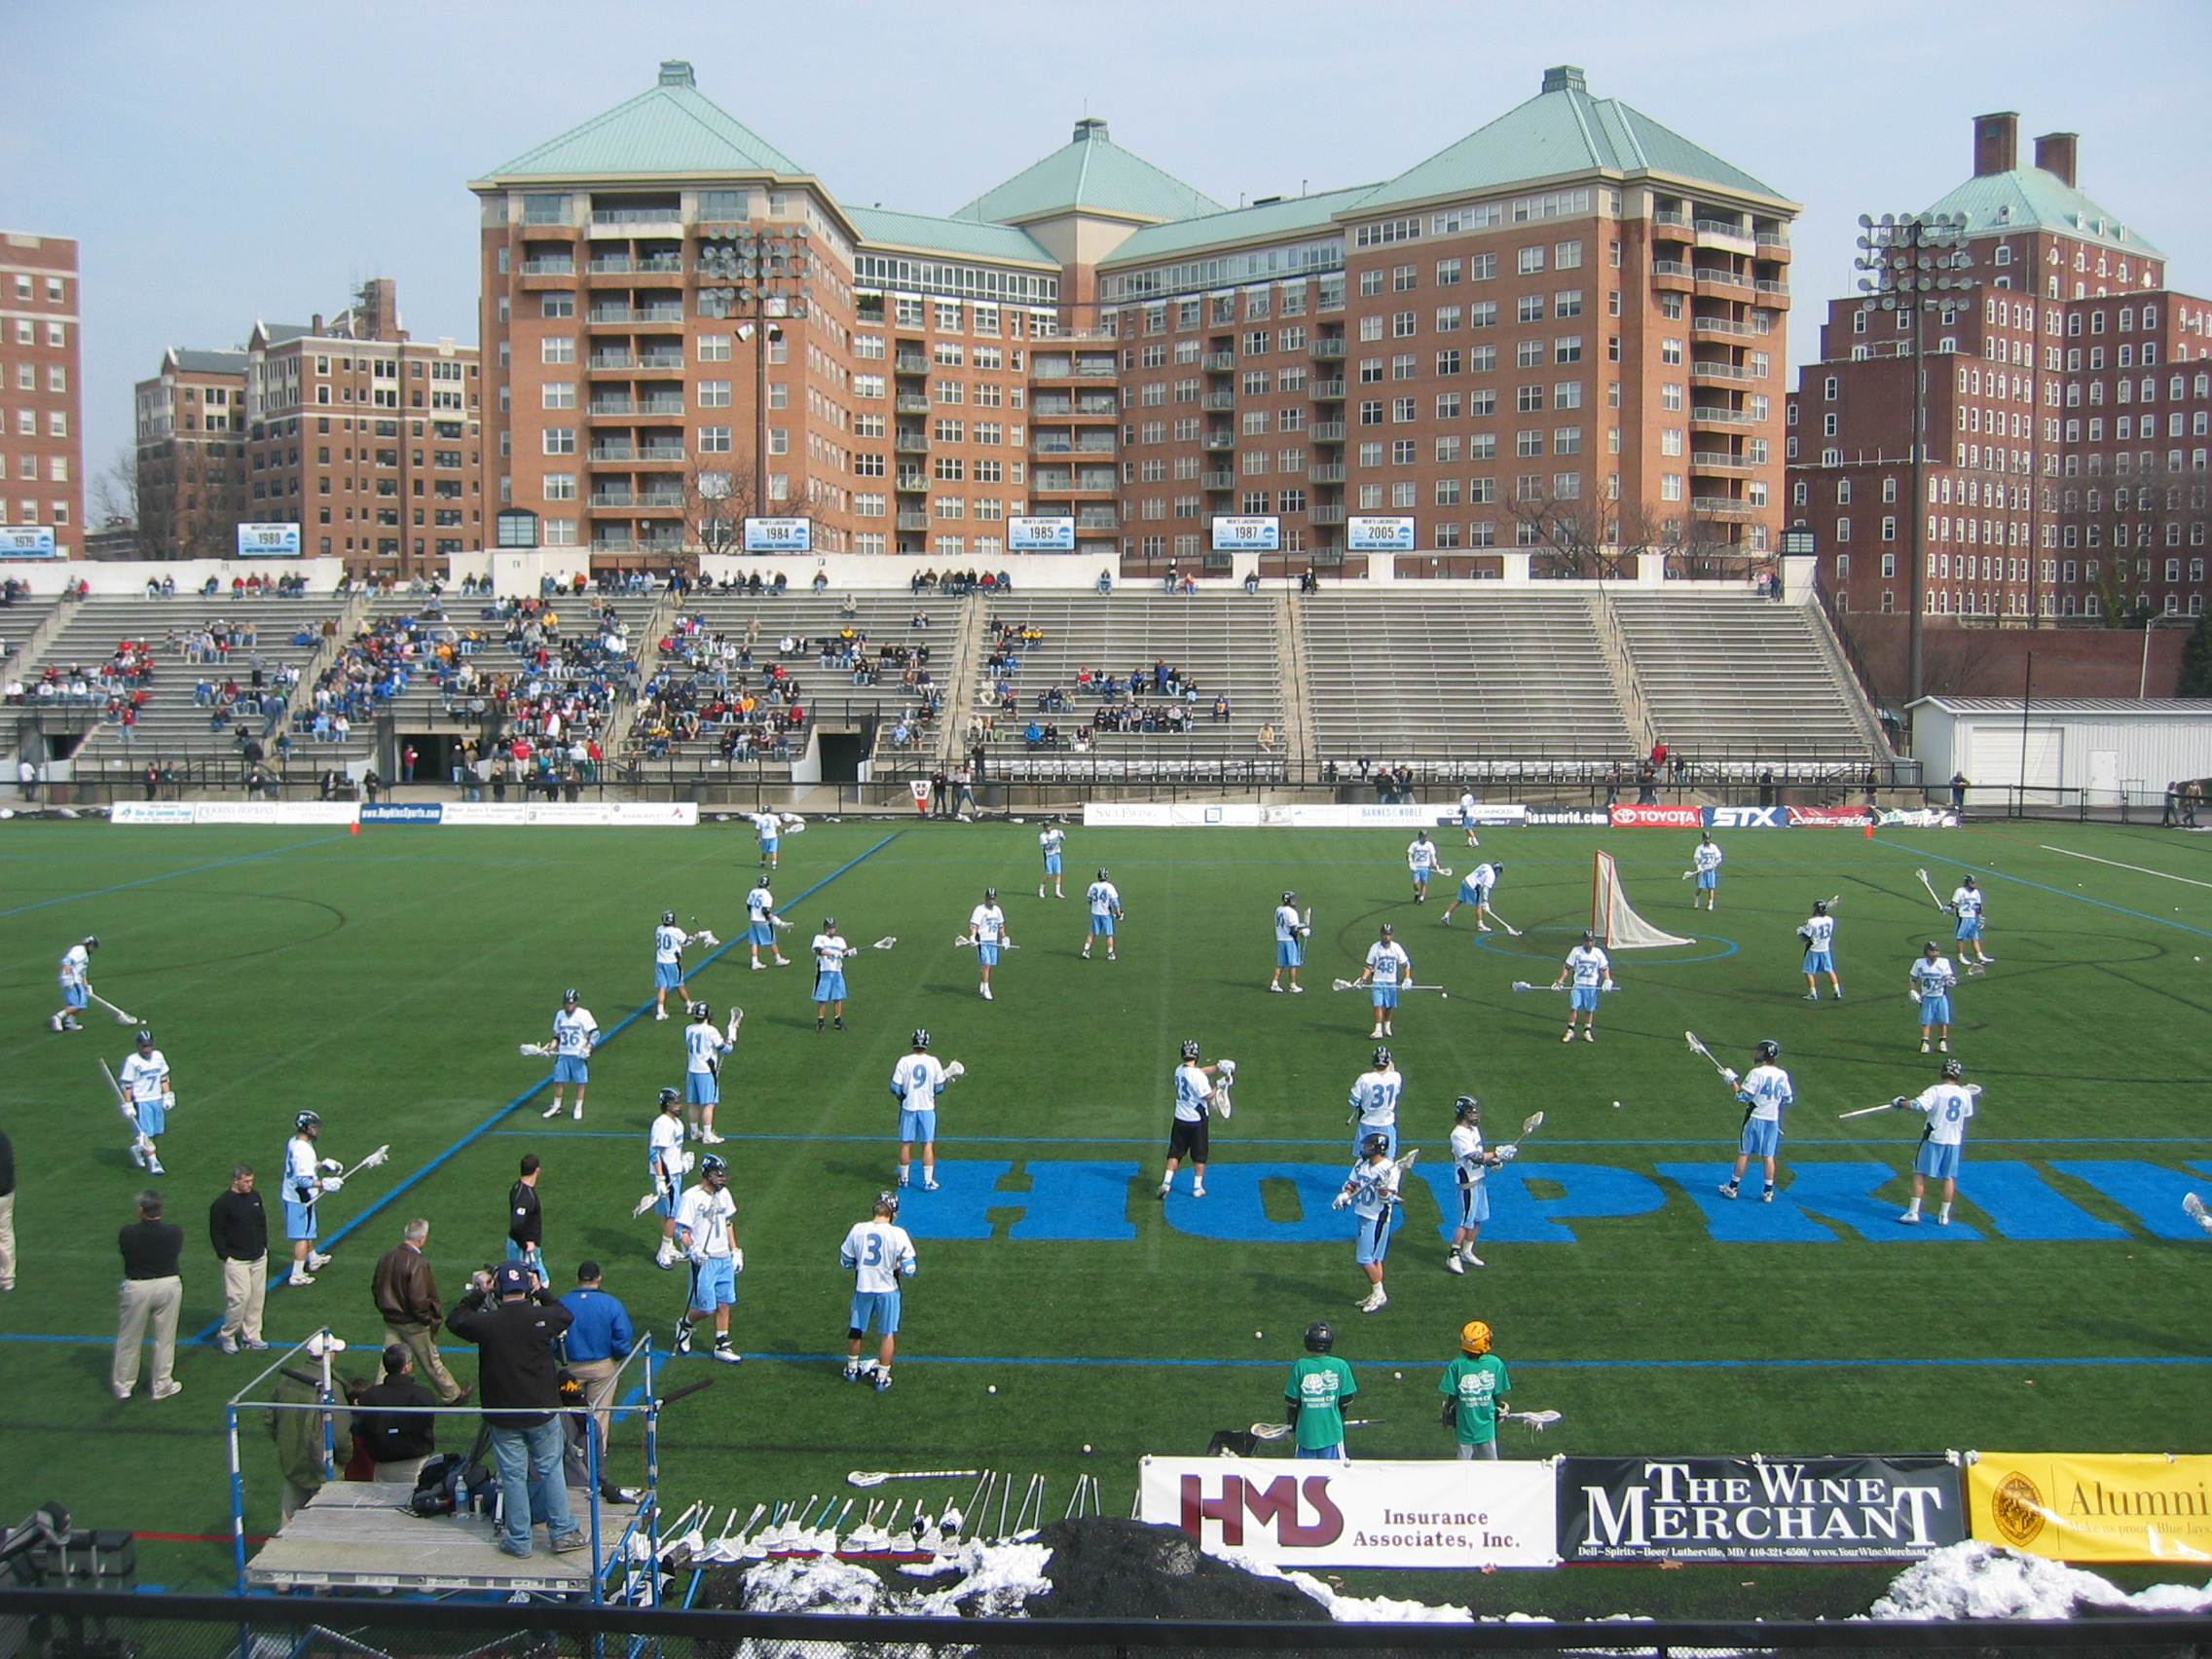 What are my chances of getting into Johns Hopkins University (JHU)?